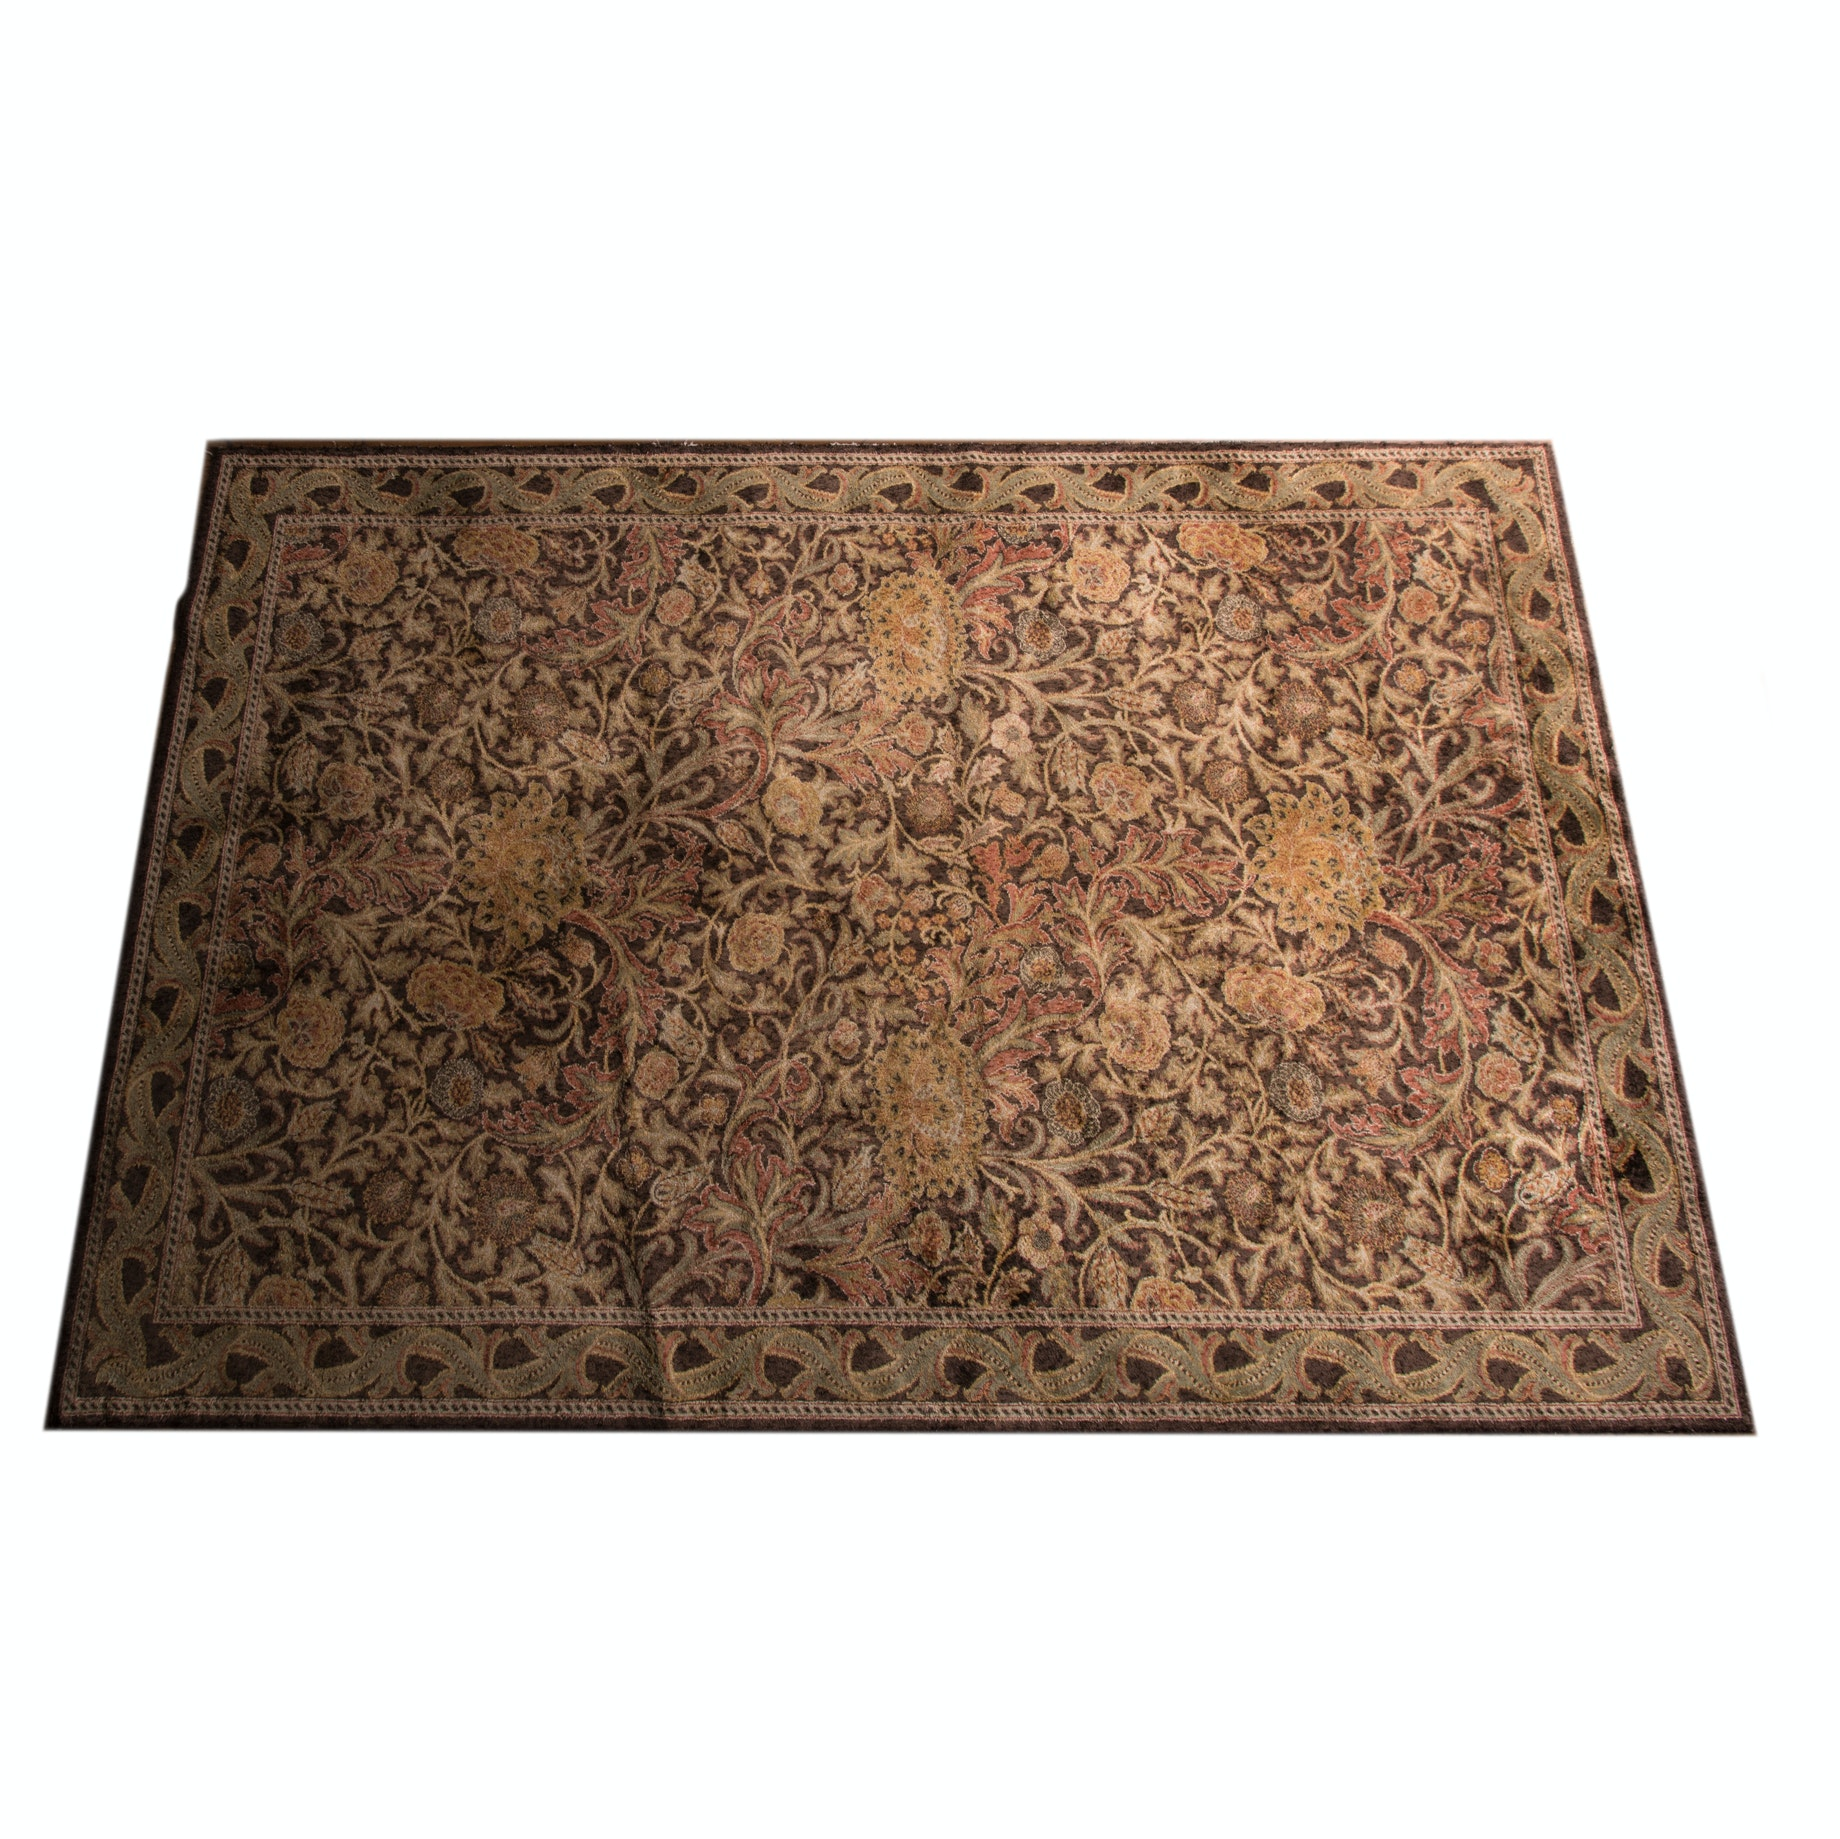 Power Loomed Synthetic Floral Area Rug